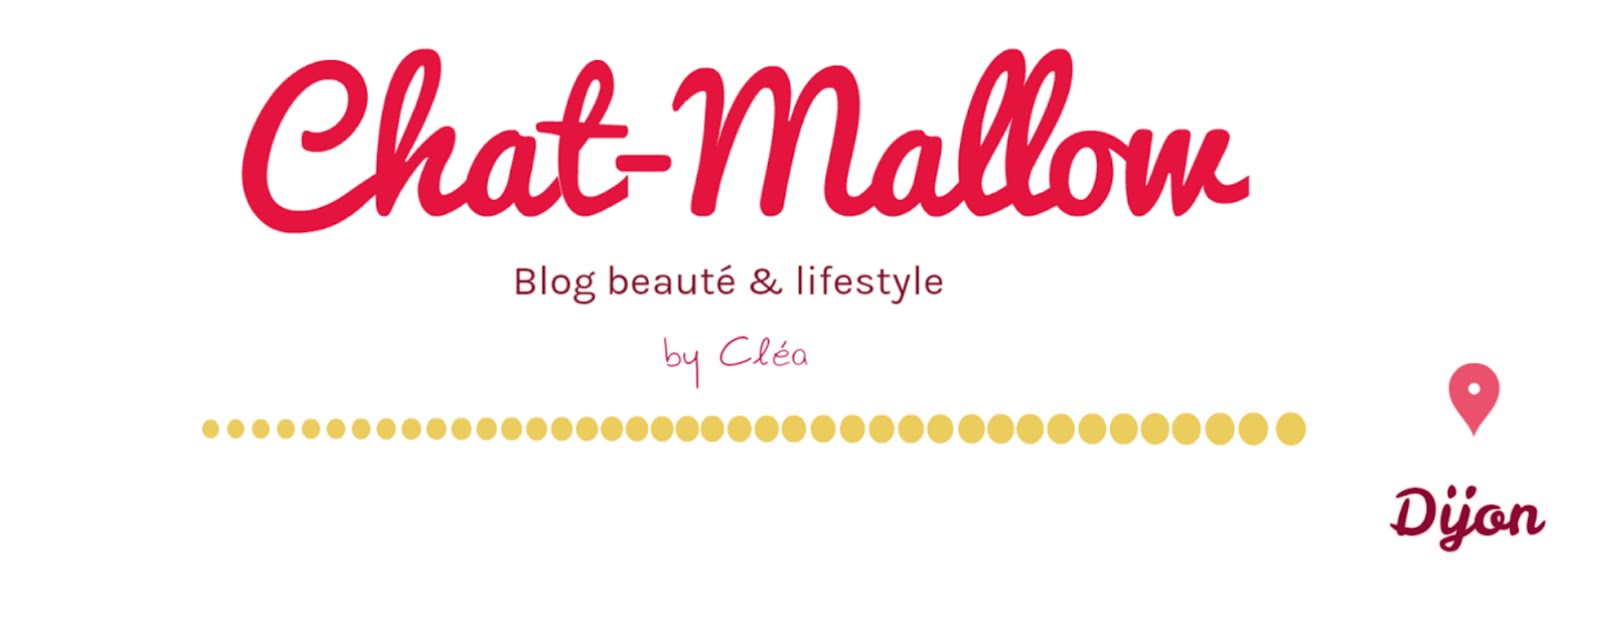 Chat-Mallow - Blog Lifestyle -  Dijon